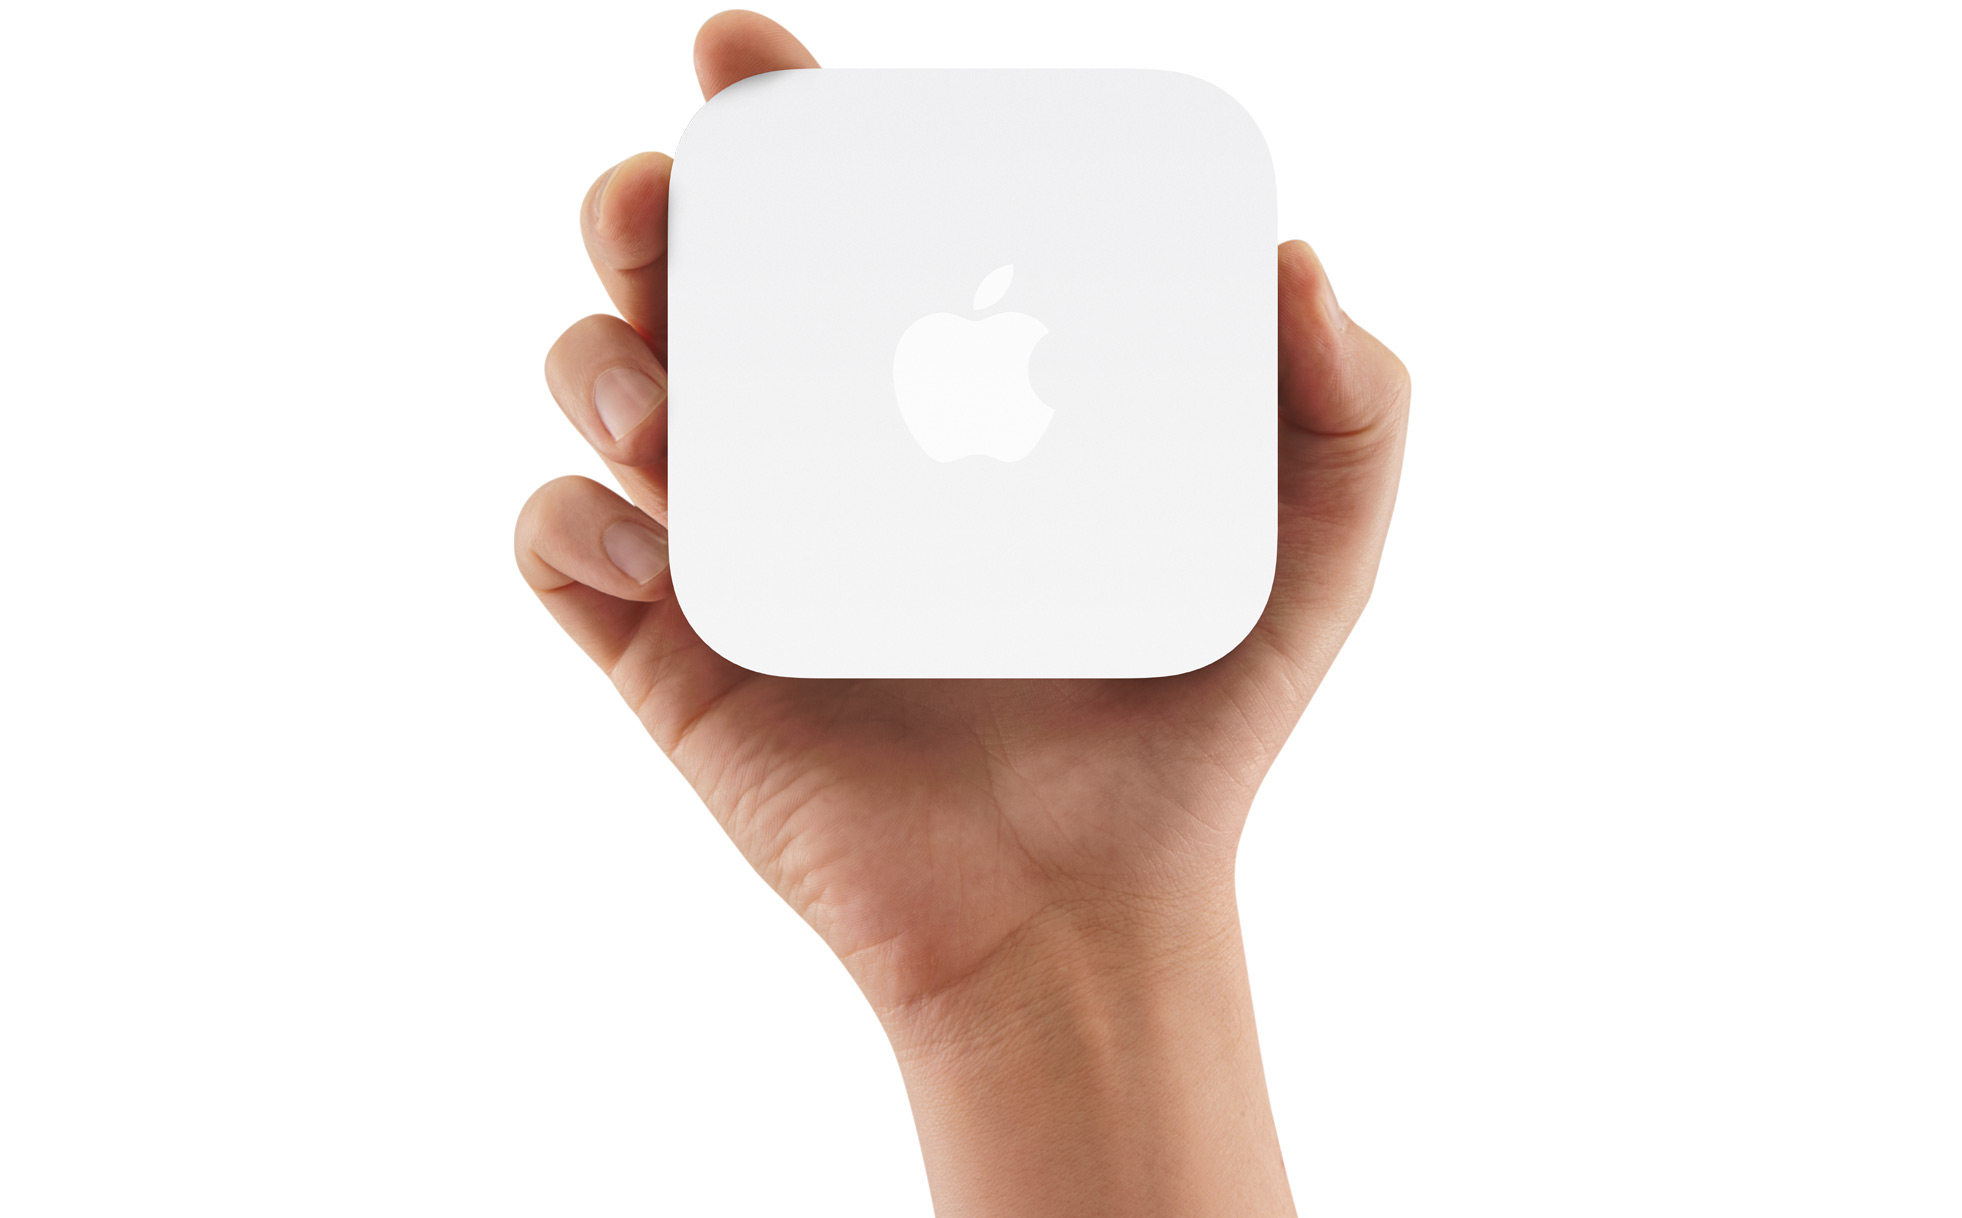 Review of Apple AirPort Express Base Station (MC414LL/A)